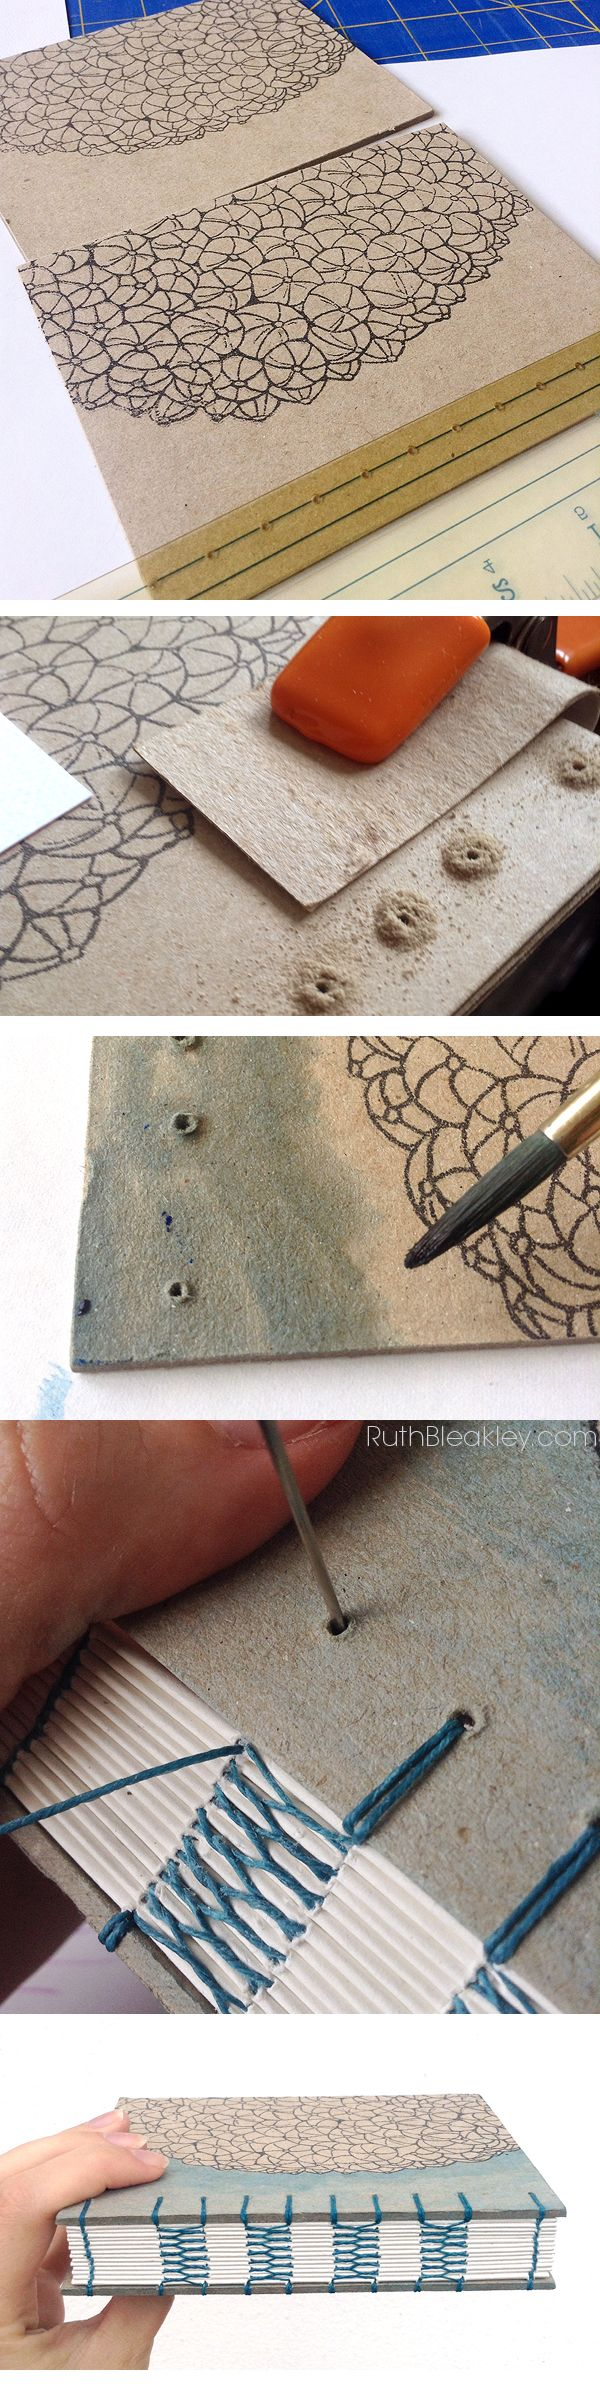 Watercolor French Link Stitch Journal aka The Barnacle Book by Ruth Bleakley #process